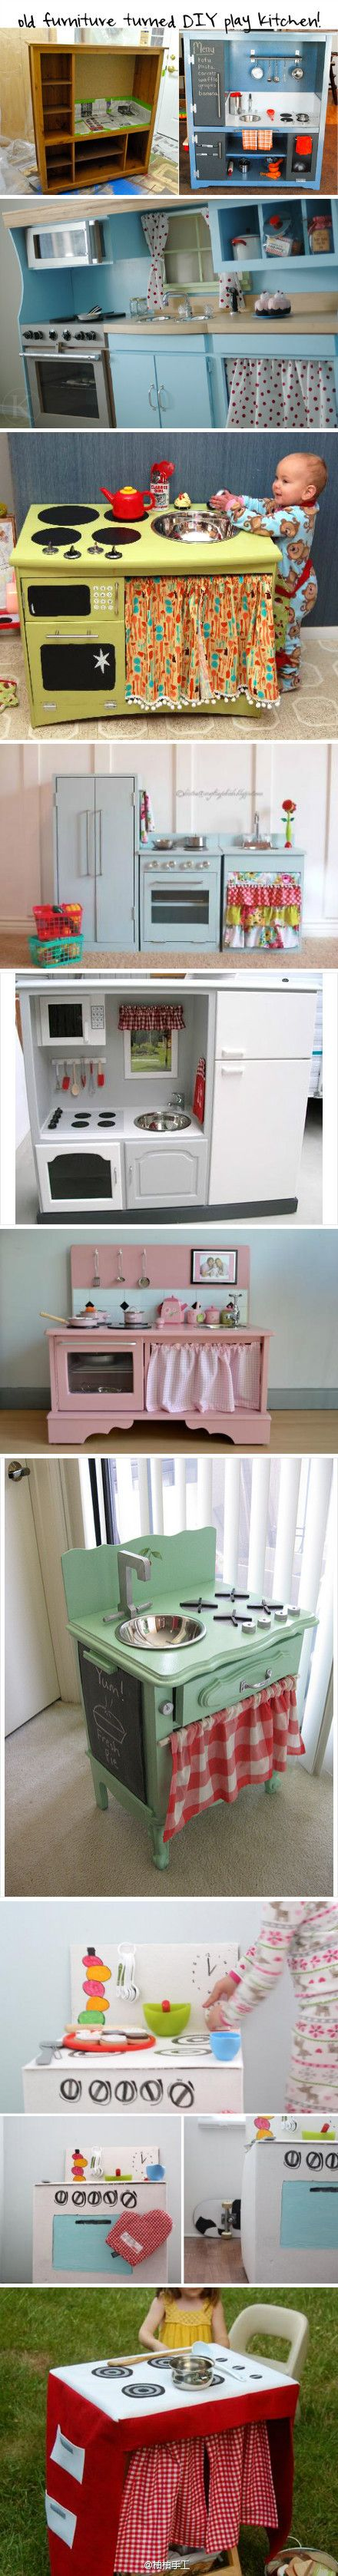 Old furniture turned DIY play kitchen - SO doing this :) Already have a piece of furniture in mind